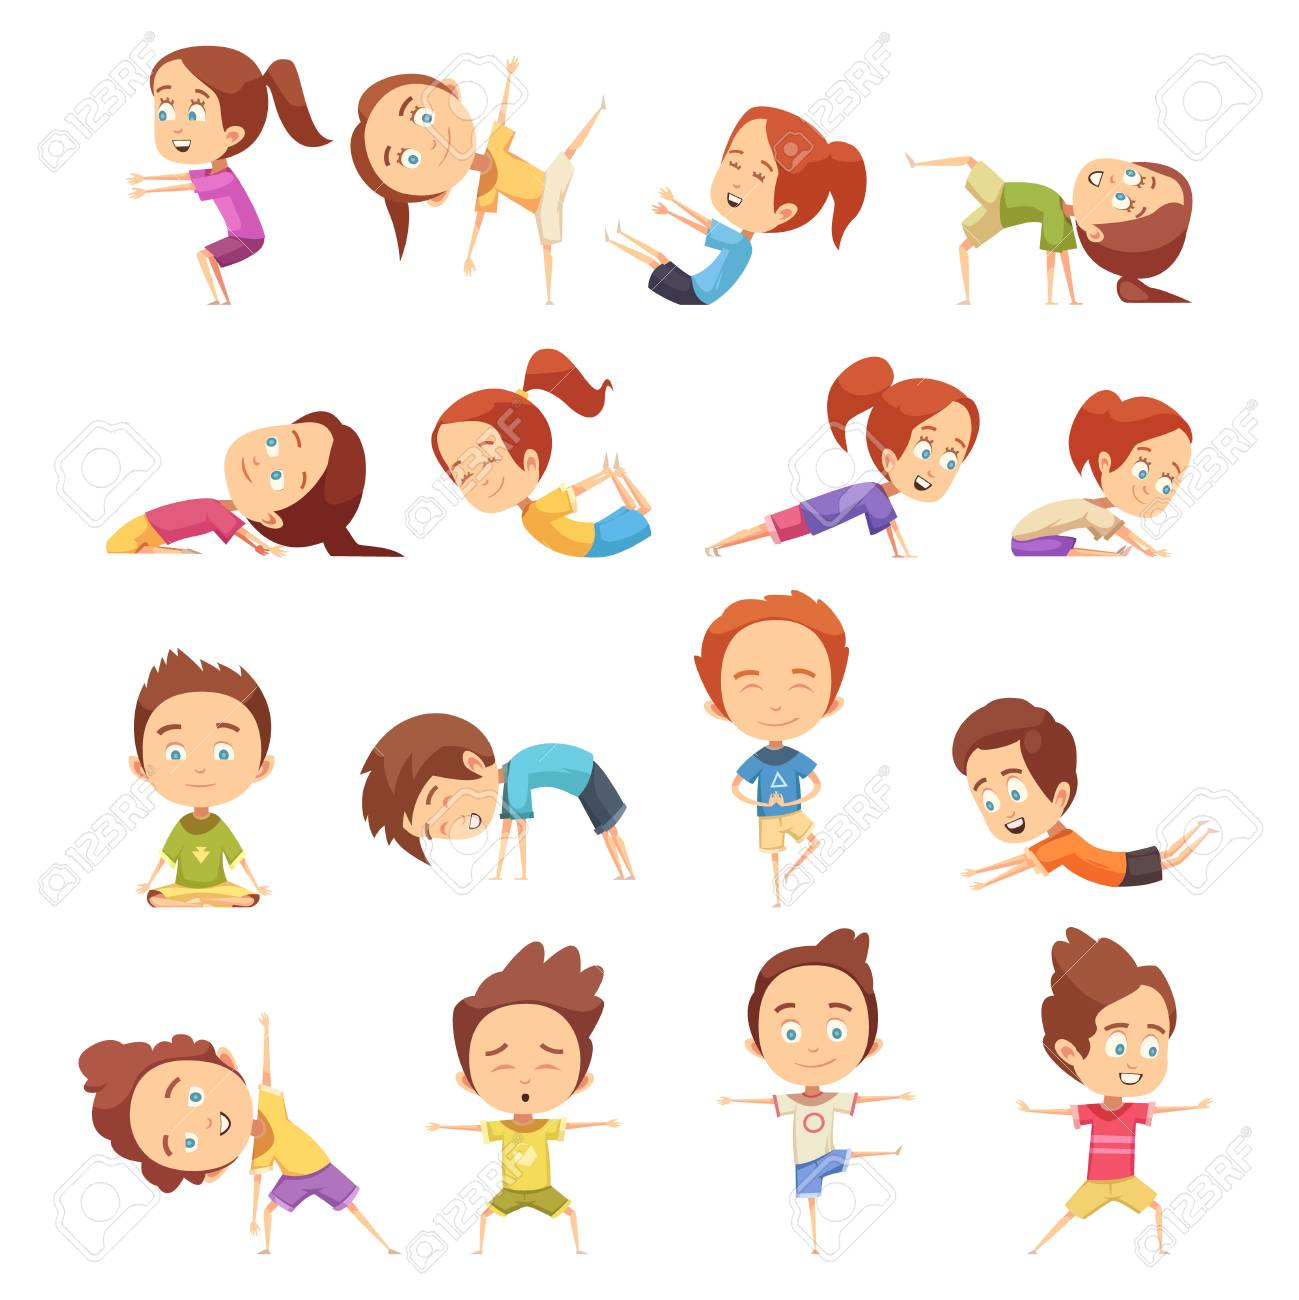 Kids Yoga Decorative Icons Set With Cute Cartoon Children In Royalty Free Cliparts Vectors And Stock Illustration Image 87287387